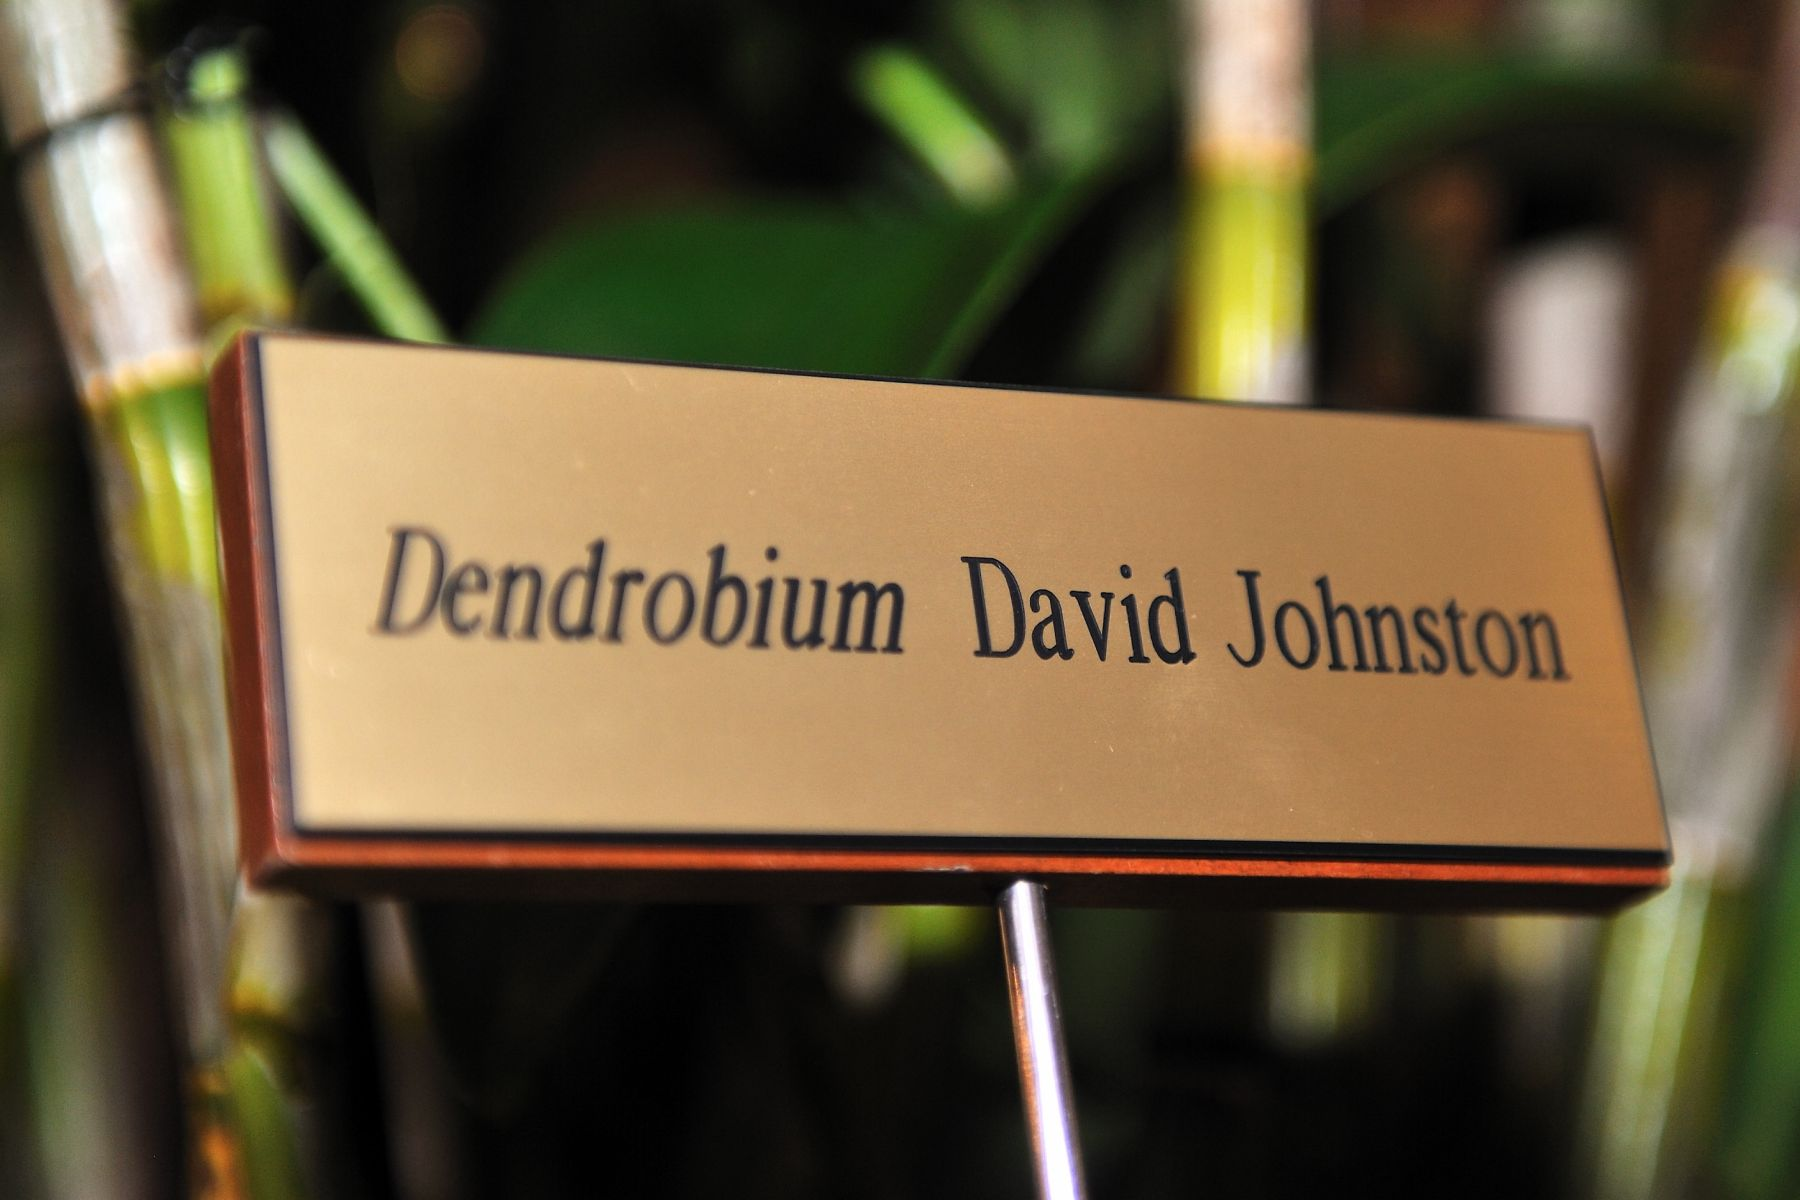 Dendrobium David Johnston